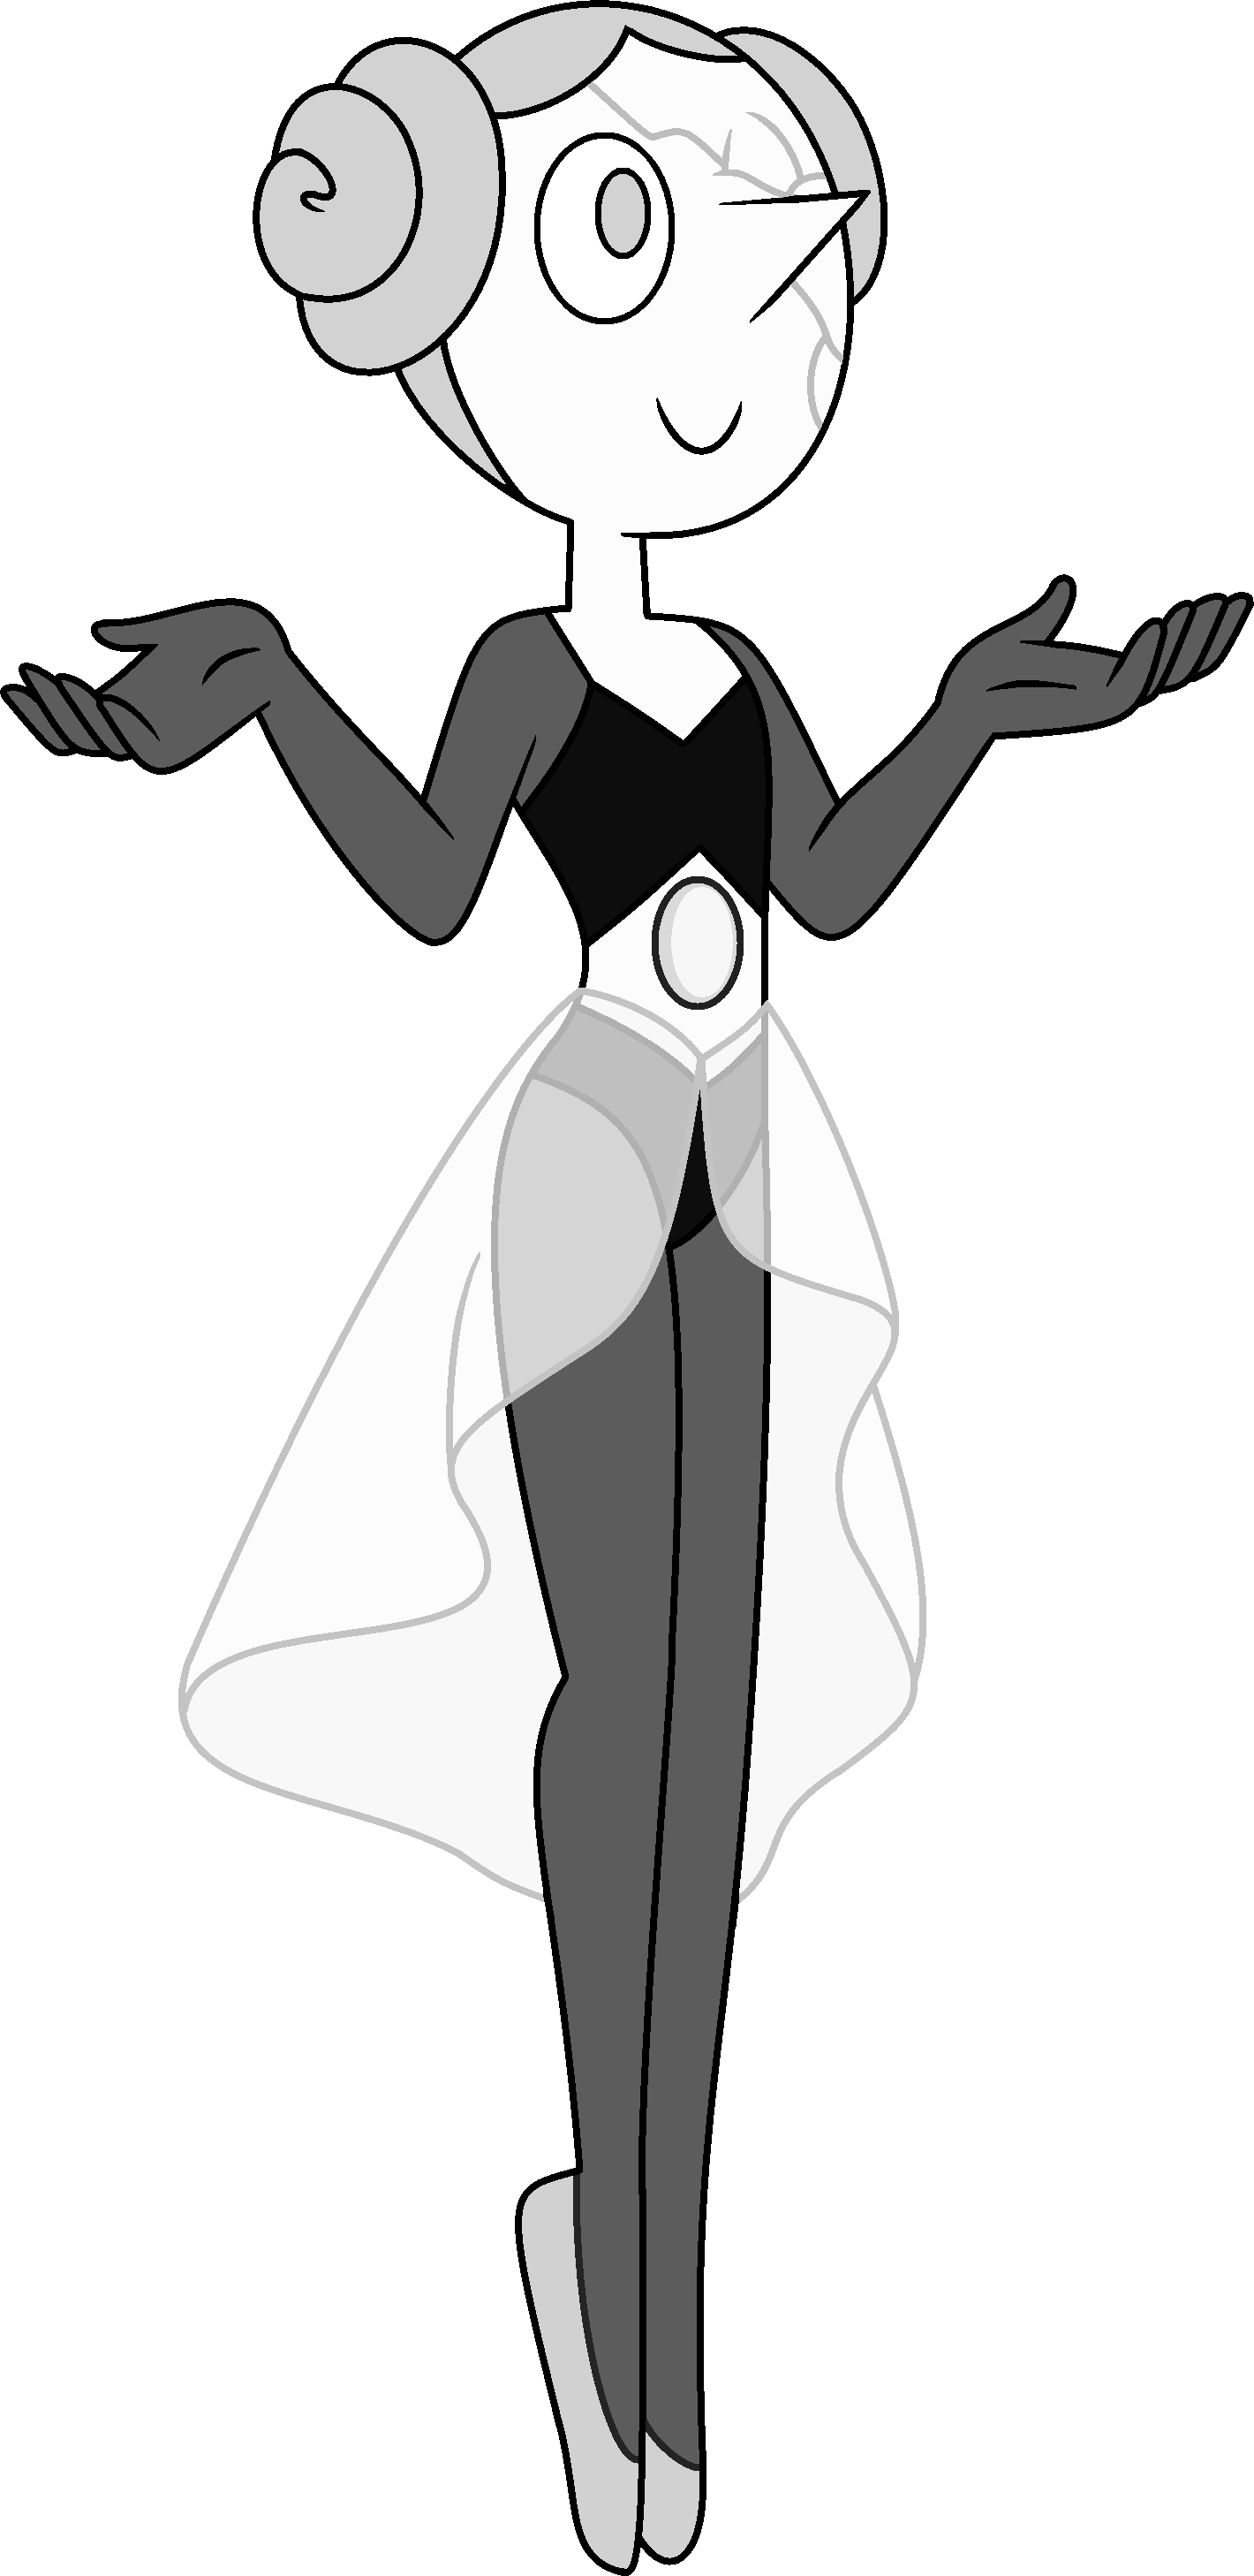 Human clipart human action. White pearl steven universe